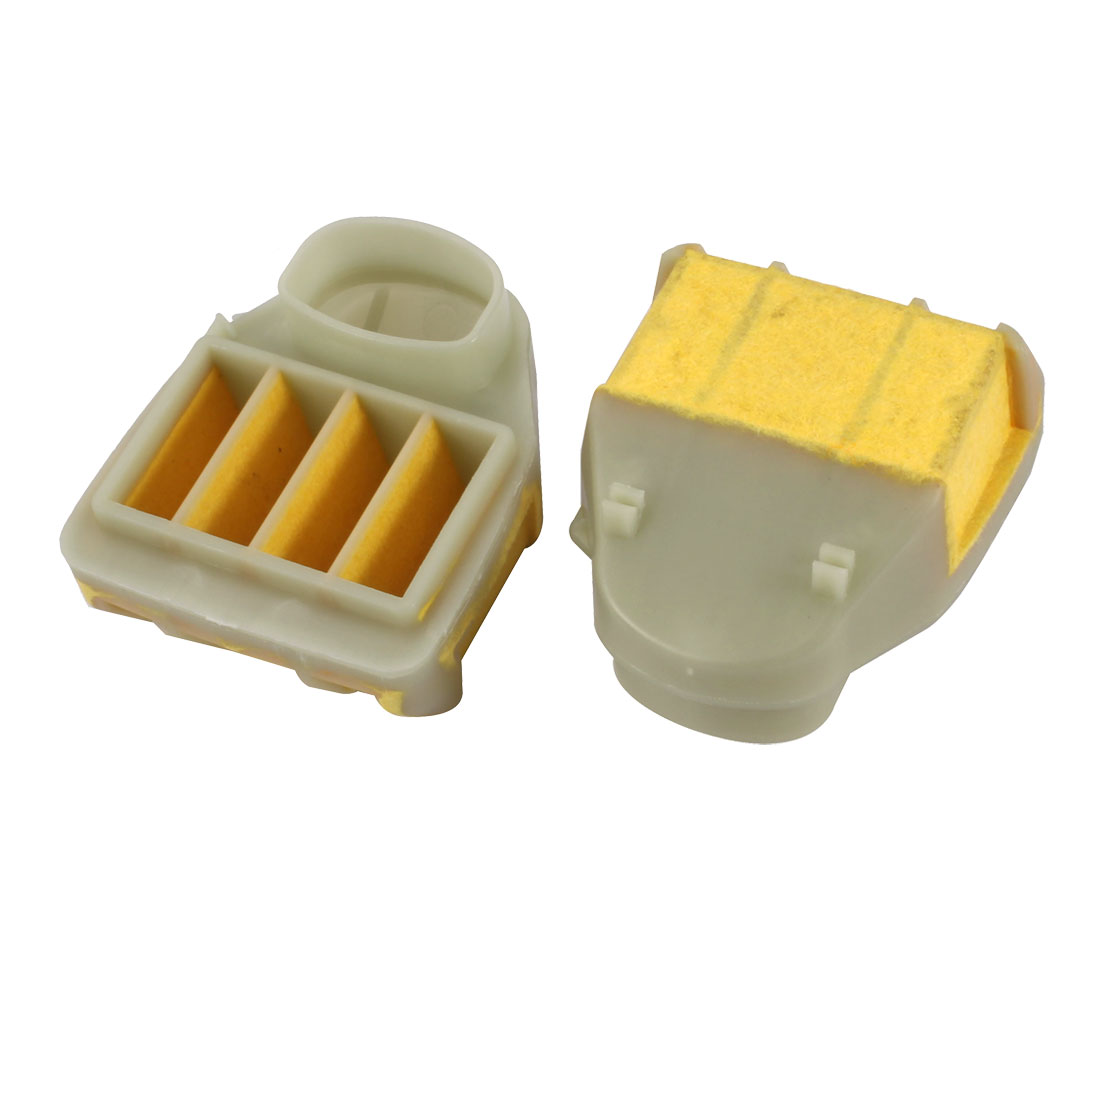 2pcs New Replacement Guard Panel Engine BM-S-12 Air Filter Cleaner Accessory